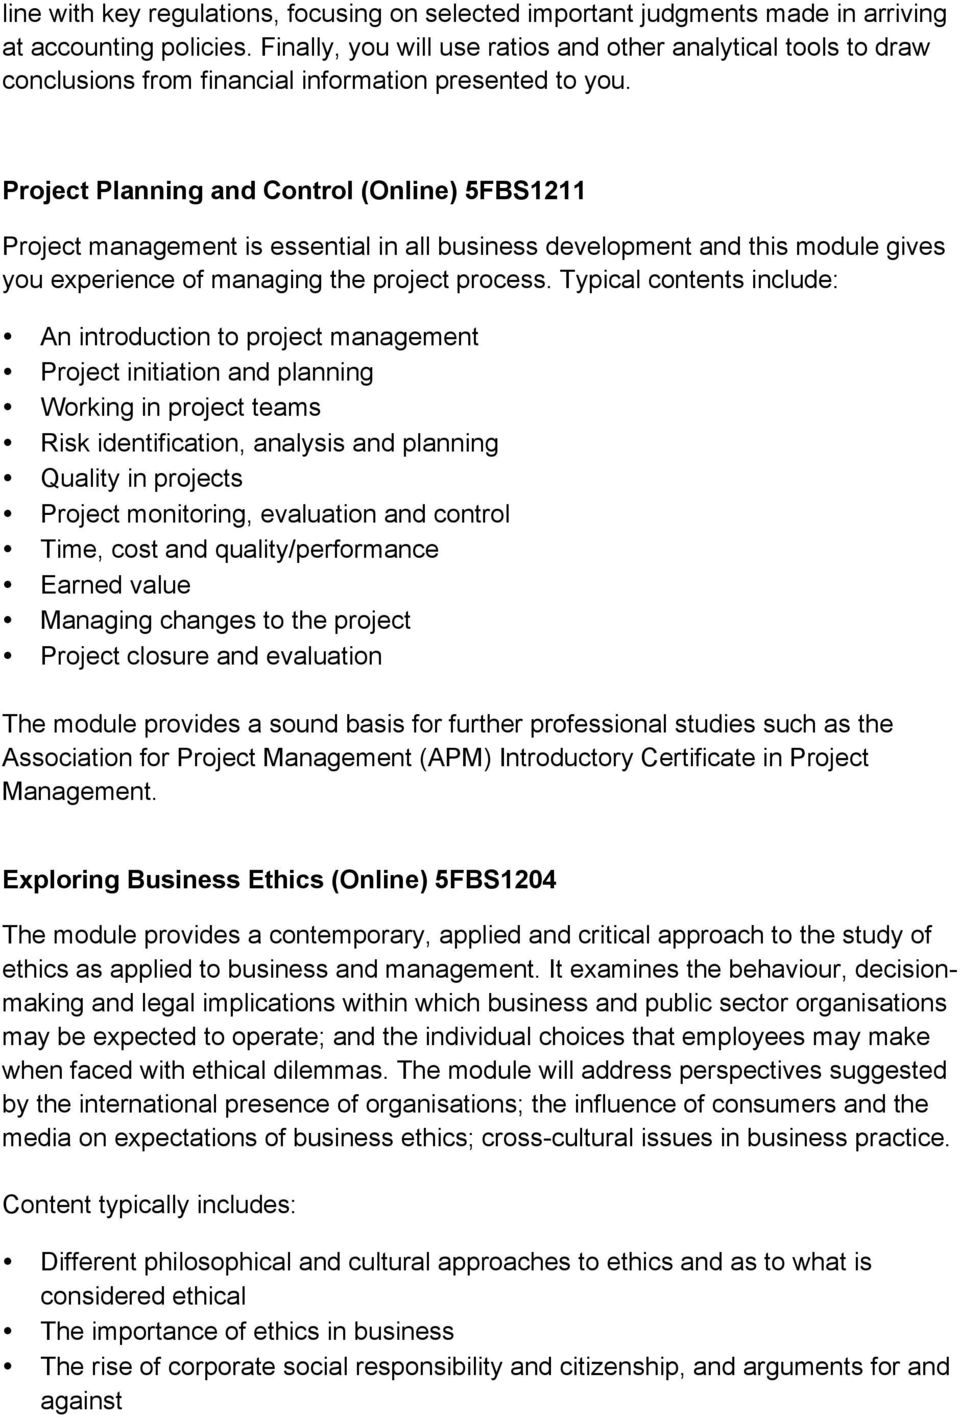 Project Planning and Control (Online) 5FBS1211 Project management is essential in all business development and this module gives you experience of managing the project process.